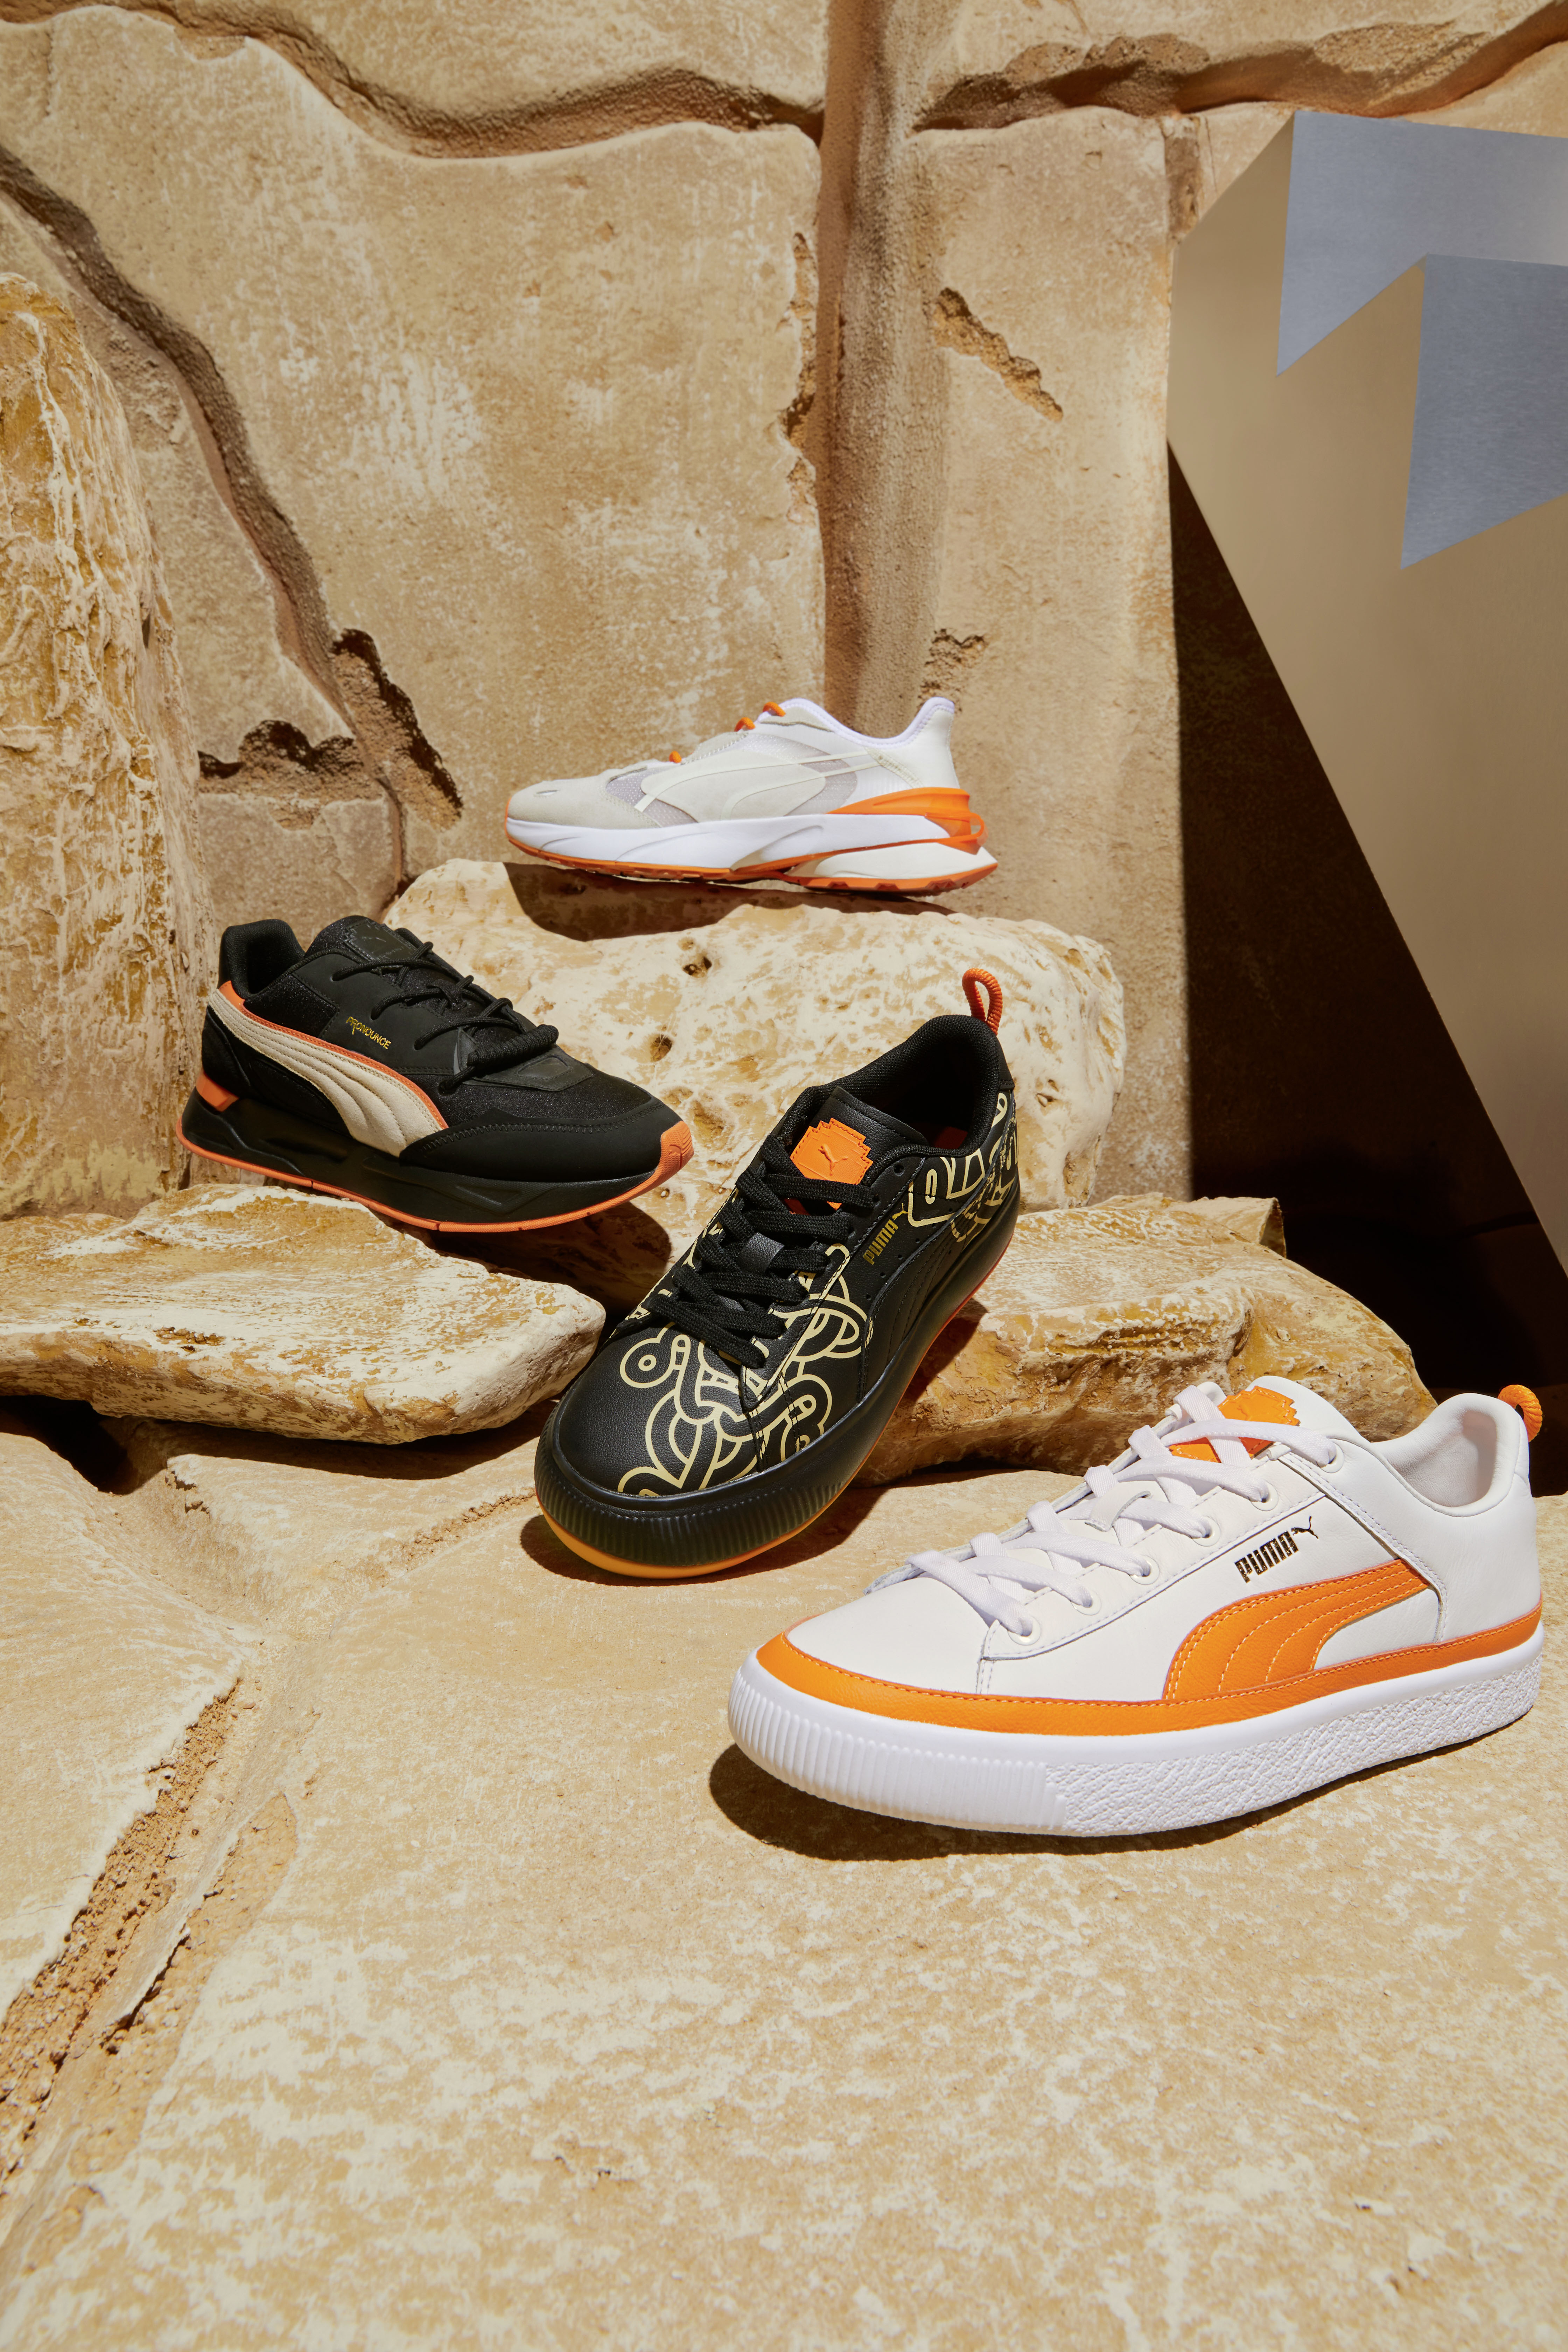 New sneaker styles from Puma x Pronounce collaboration.